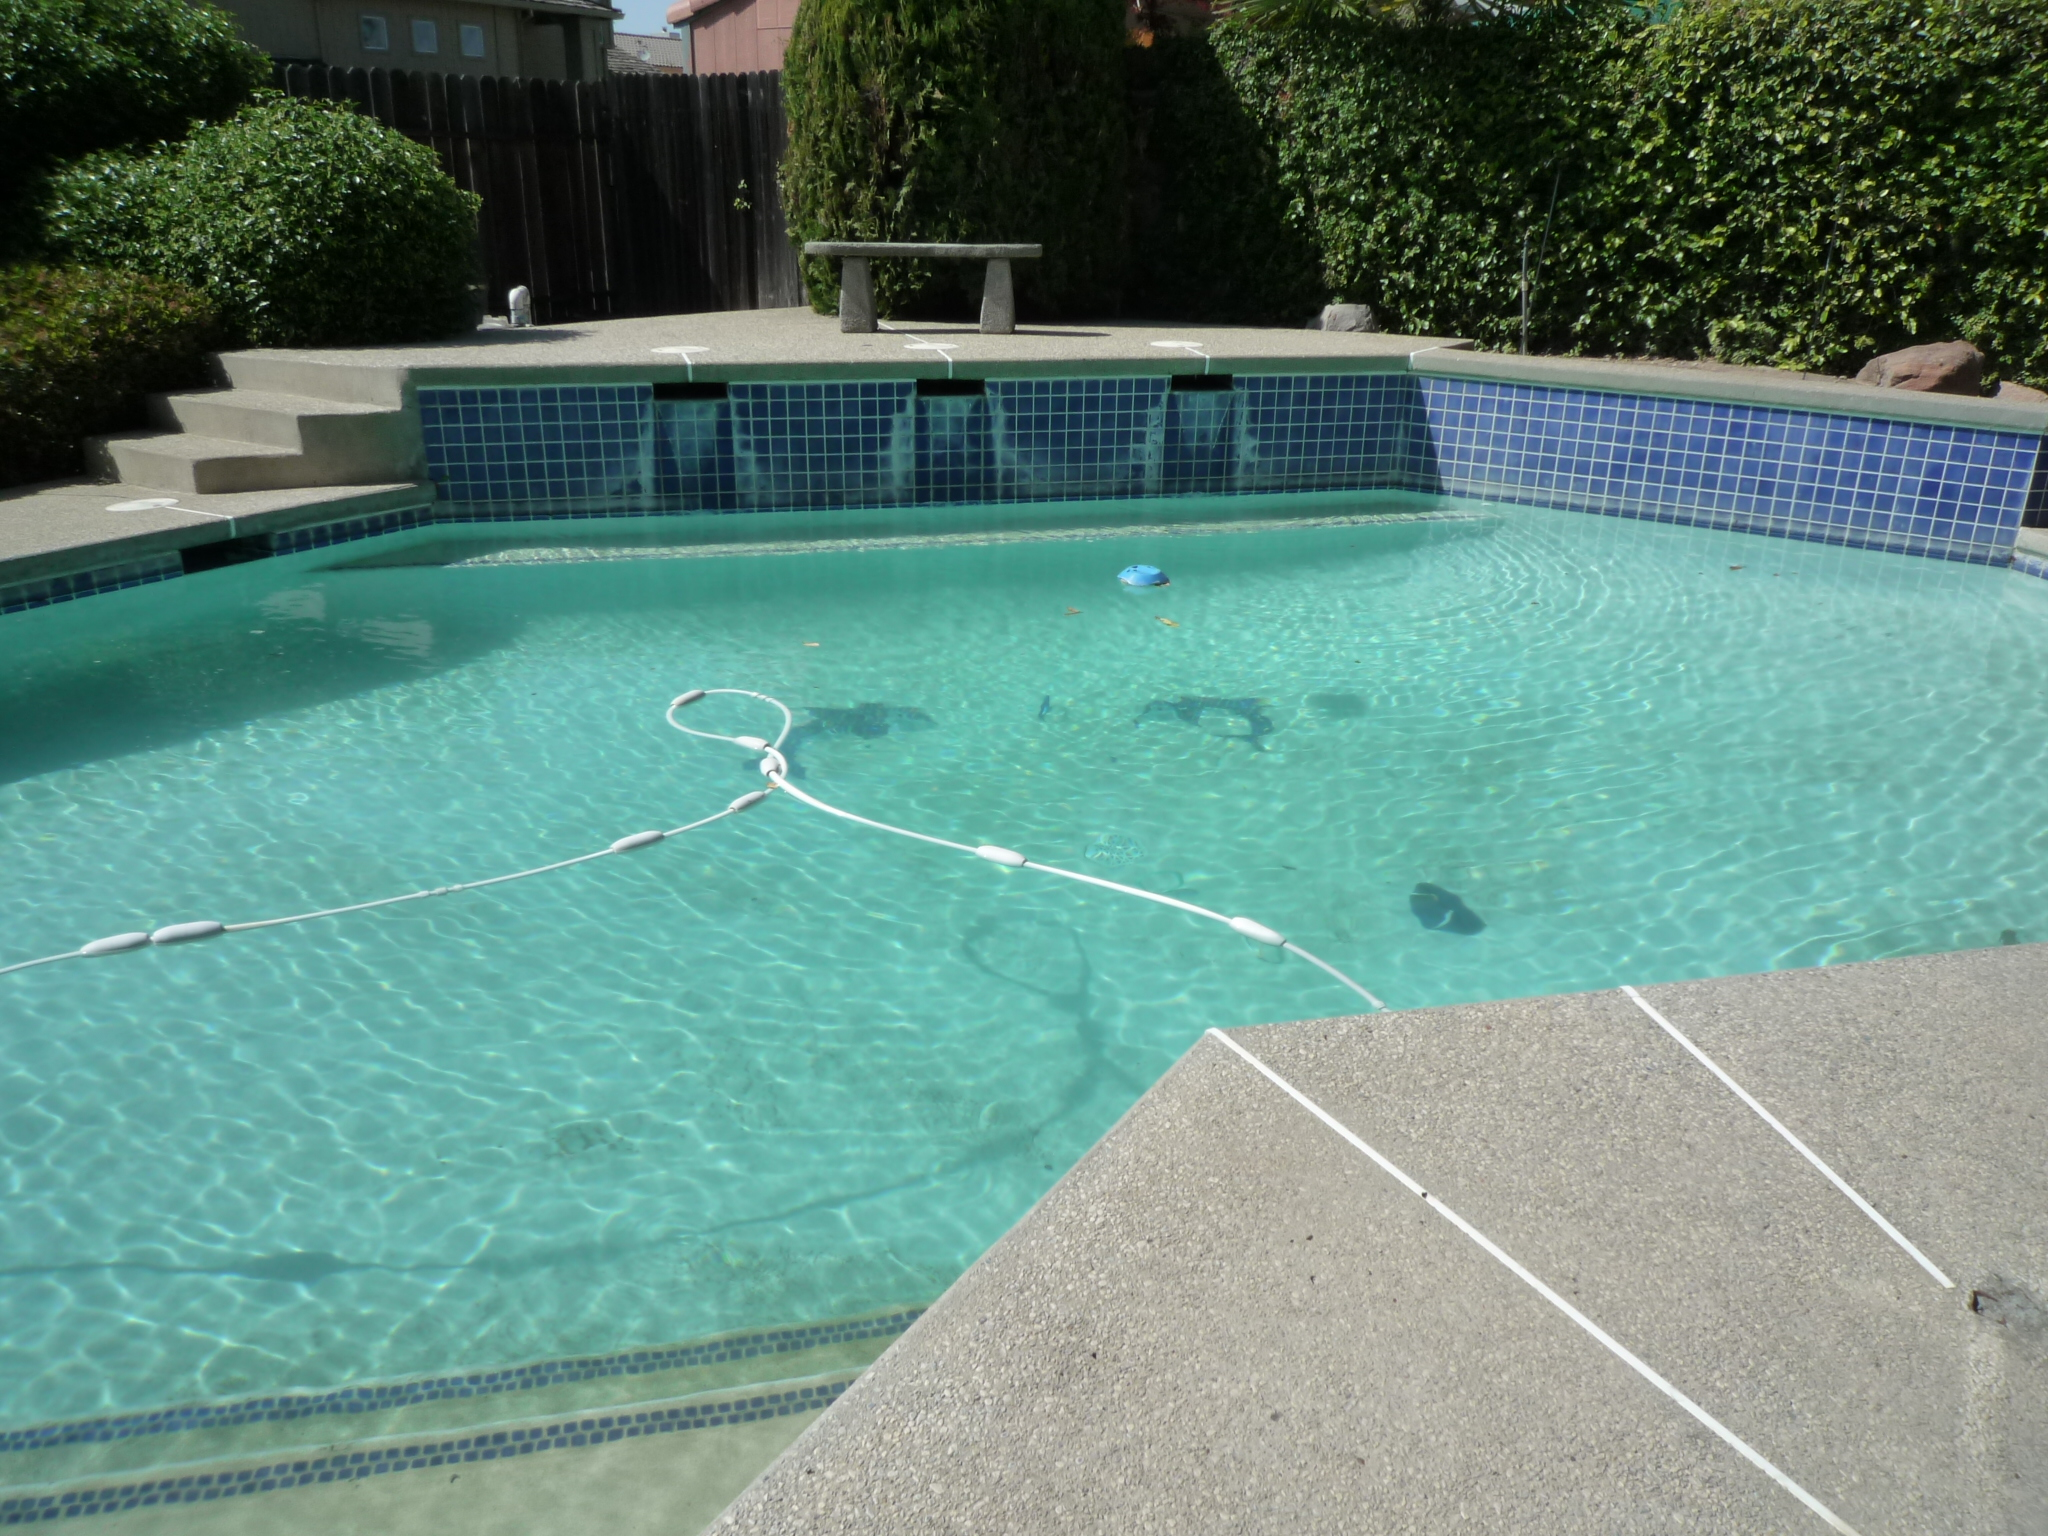 Homes with swimming pools now for sale free list for Houses for sale pool